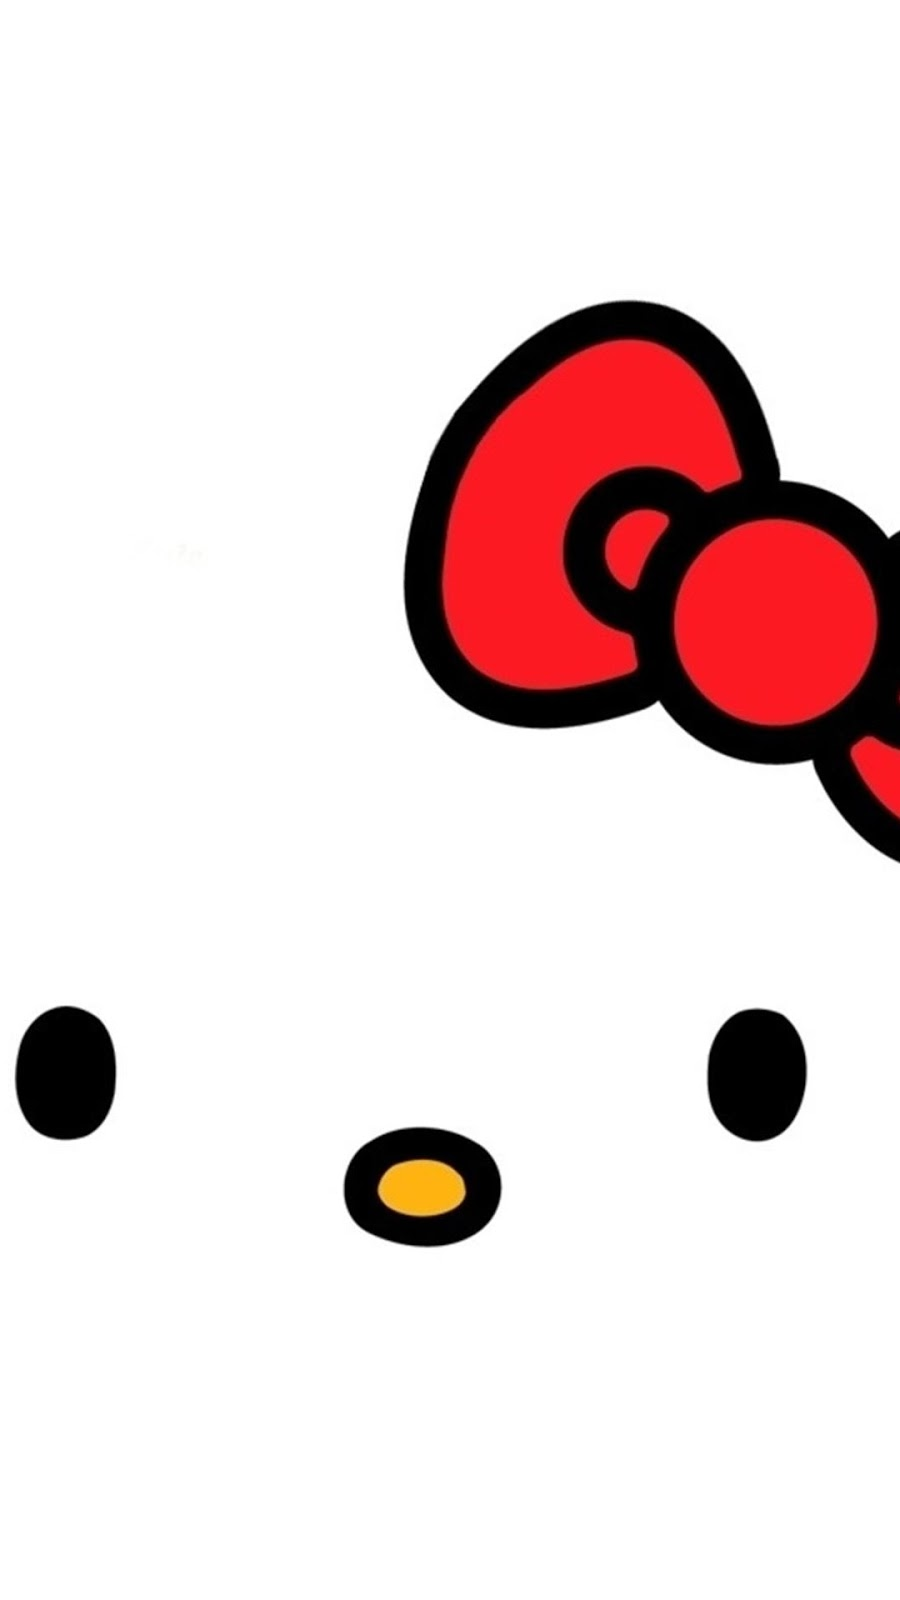 Download Wallpaper Hello Kitty Android - Wallpaper%2BAndroid%2BHello%2BKitty  You Should Have_939781.jpg